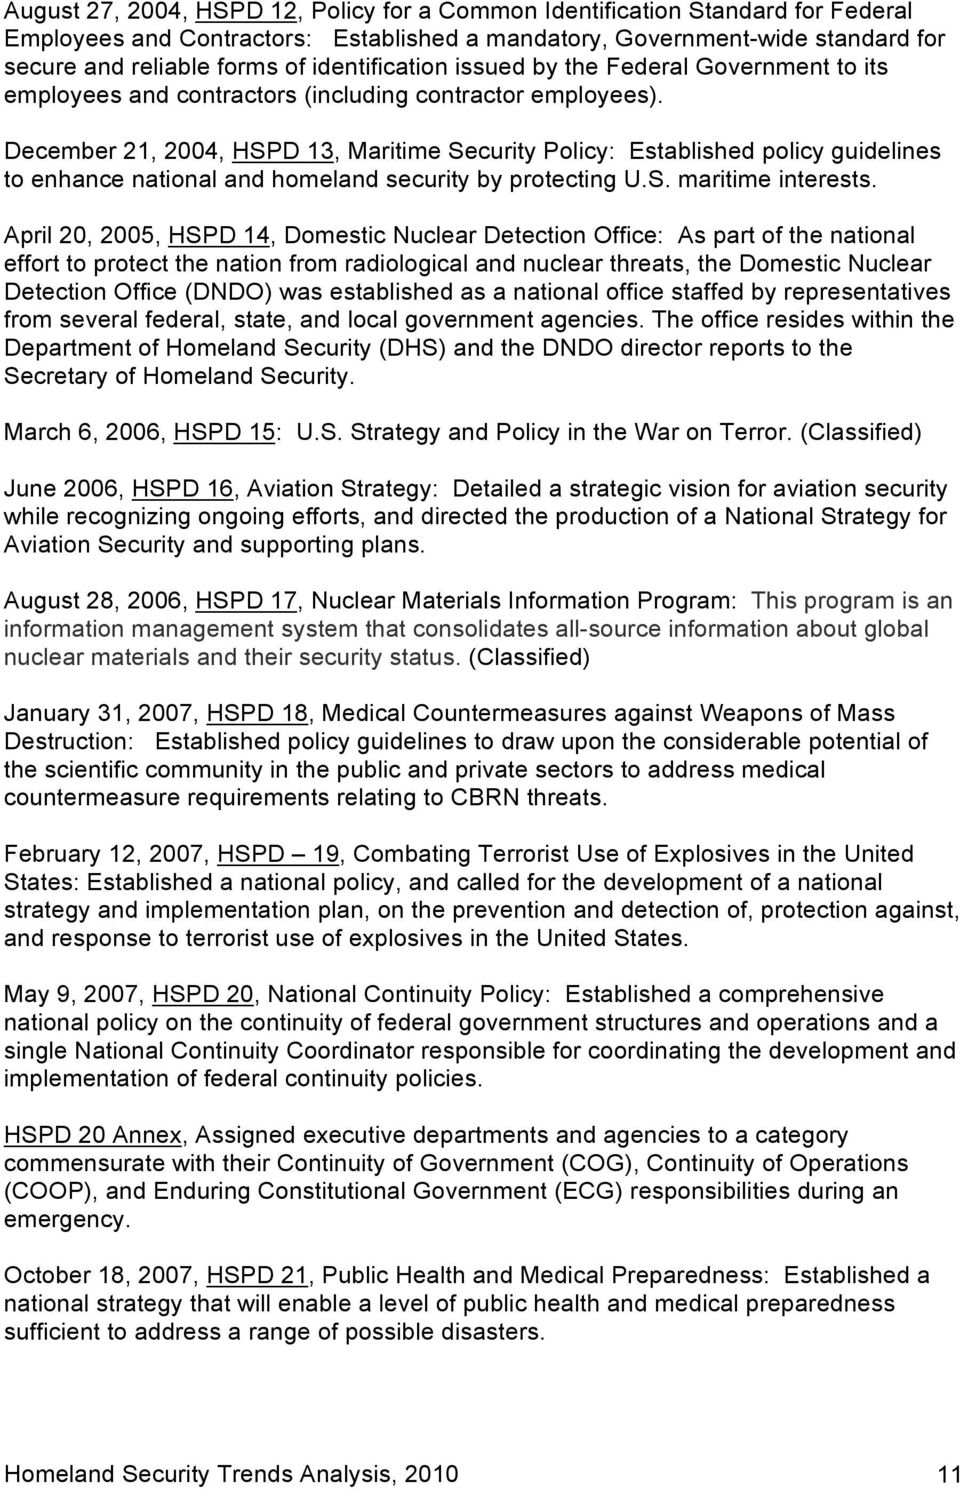 December 21, 2004, HSPD 13, Maritime Security Plicy: Established plicy guidelines t enhance natinal and hmeland security by prtecting U.S. maritime interests.